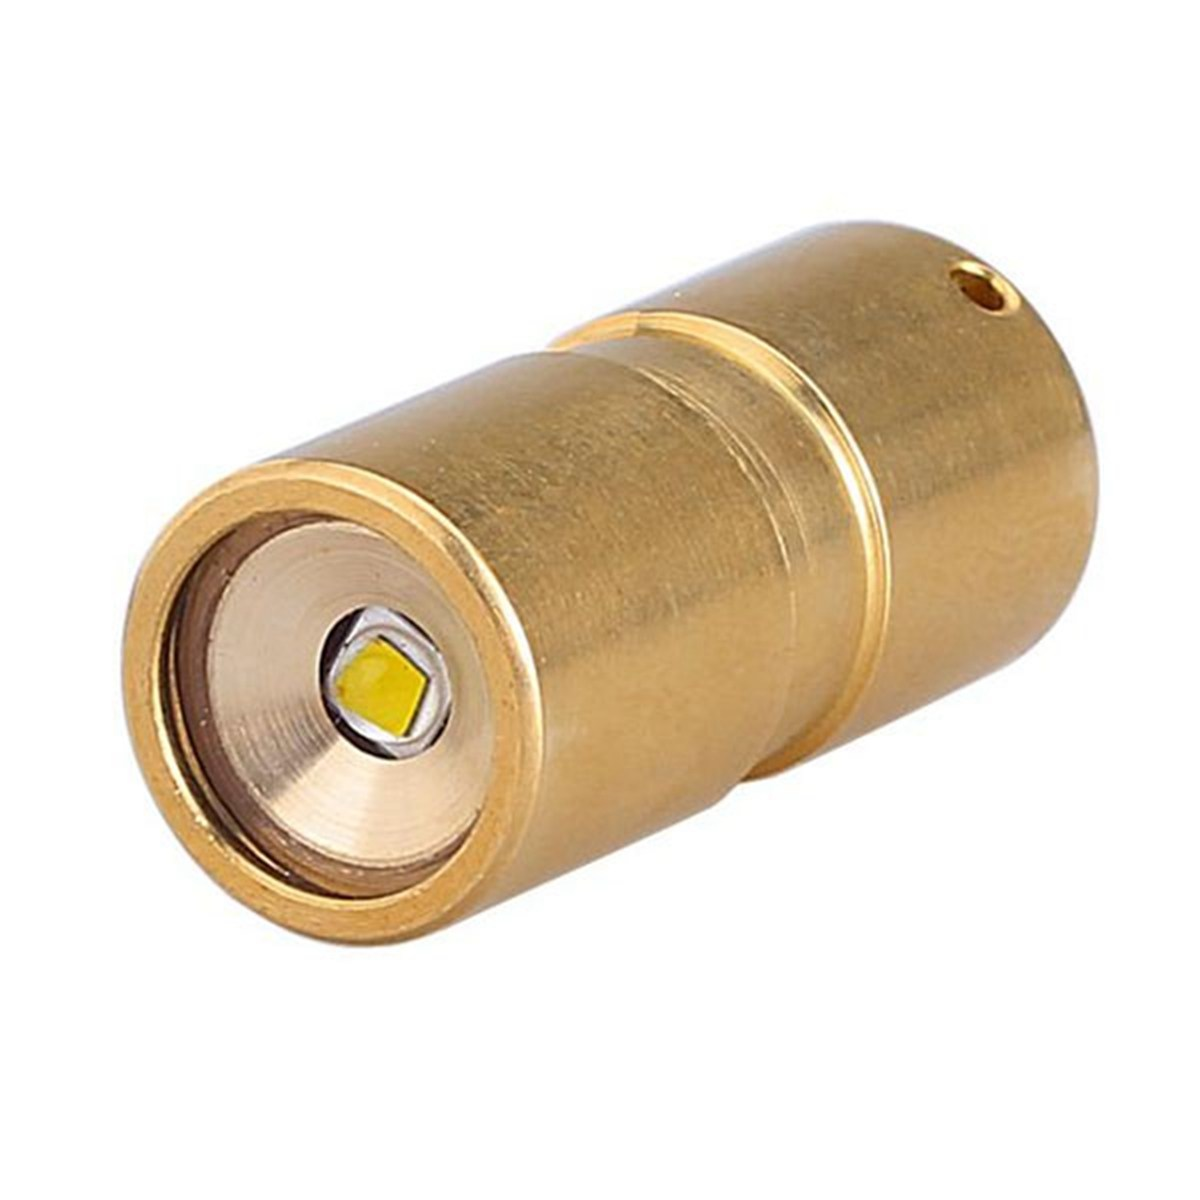 DQG Brass copper Fairy Brass XP-G2 R5 200 LM Mini LED Light Torch Flashlight With Tritium Vials dqg ti v3 100 lumens 2 modes flashlight xp g2 r5 torch led camping flashlight for aaa 10440 battery with tritium vials